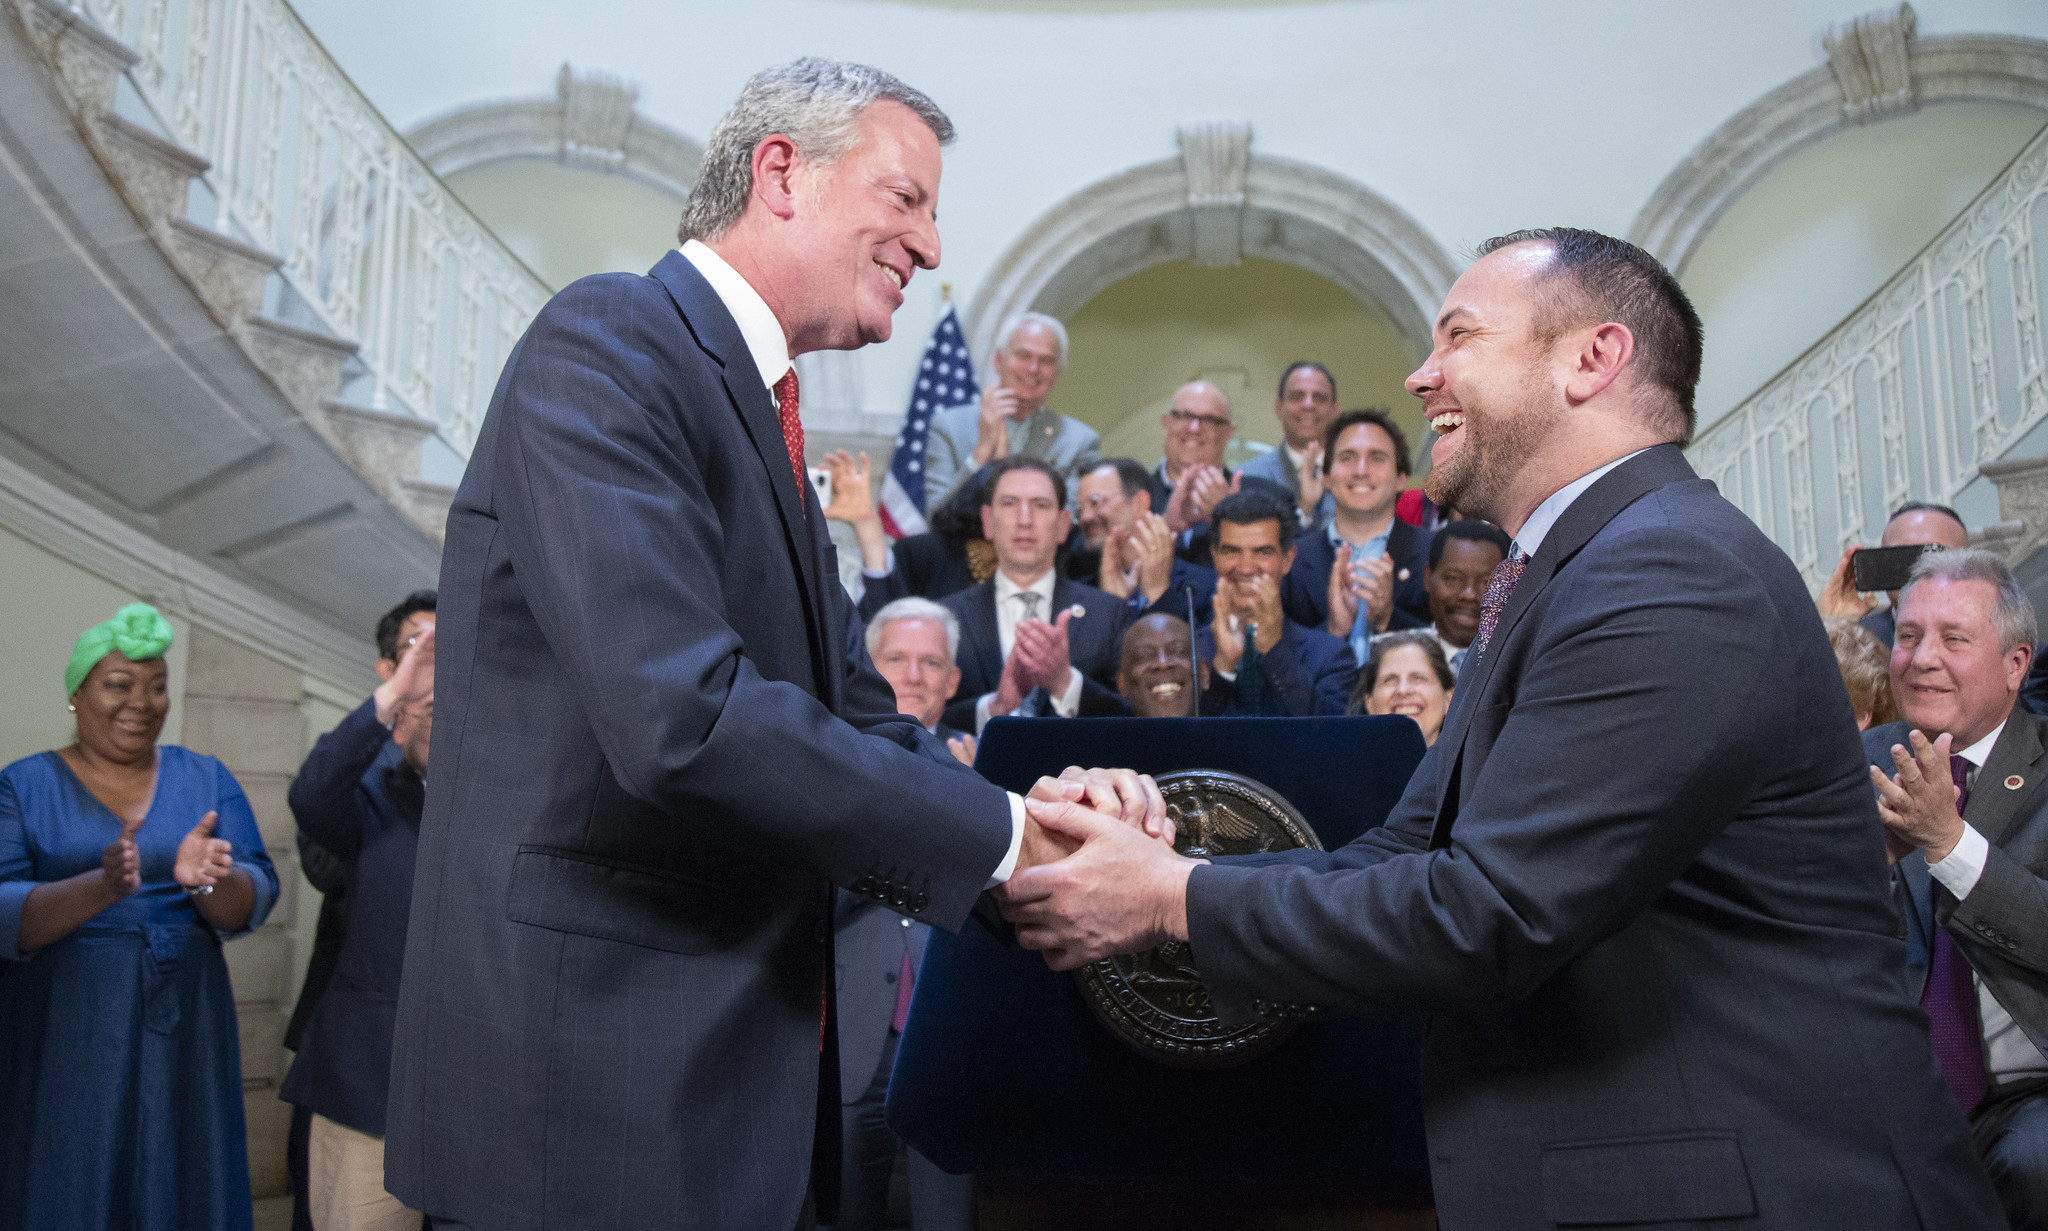 Speaker Corey Johnson and the NYC Council Join With Mayor de Blasio for Budget Handshake. Picture by John McCarten.